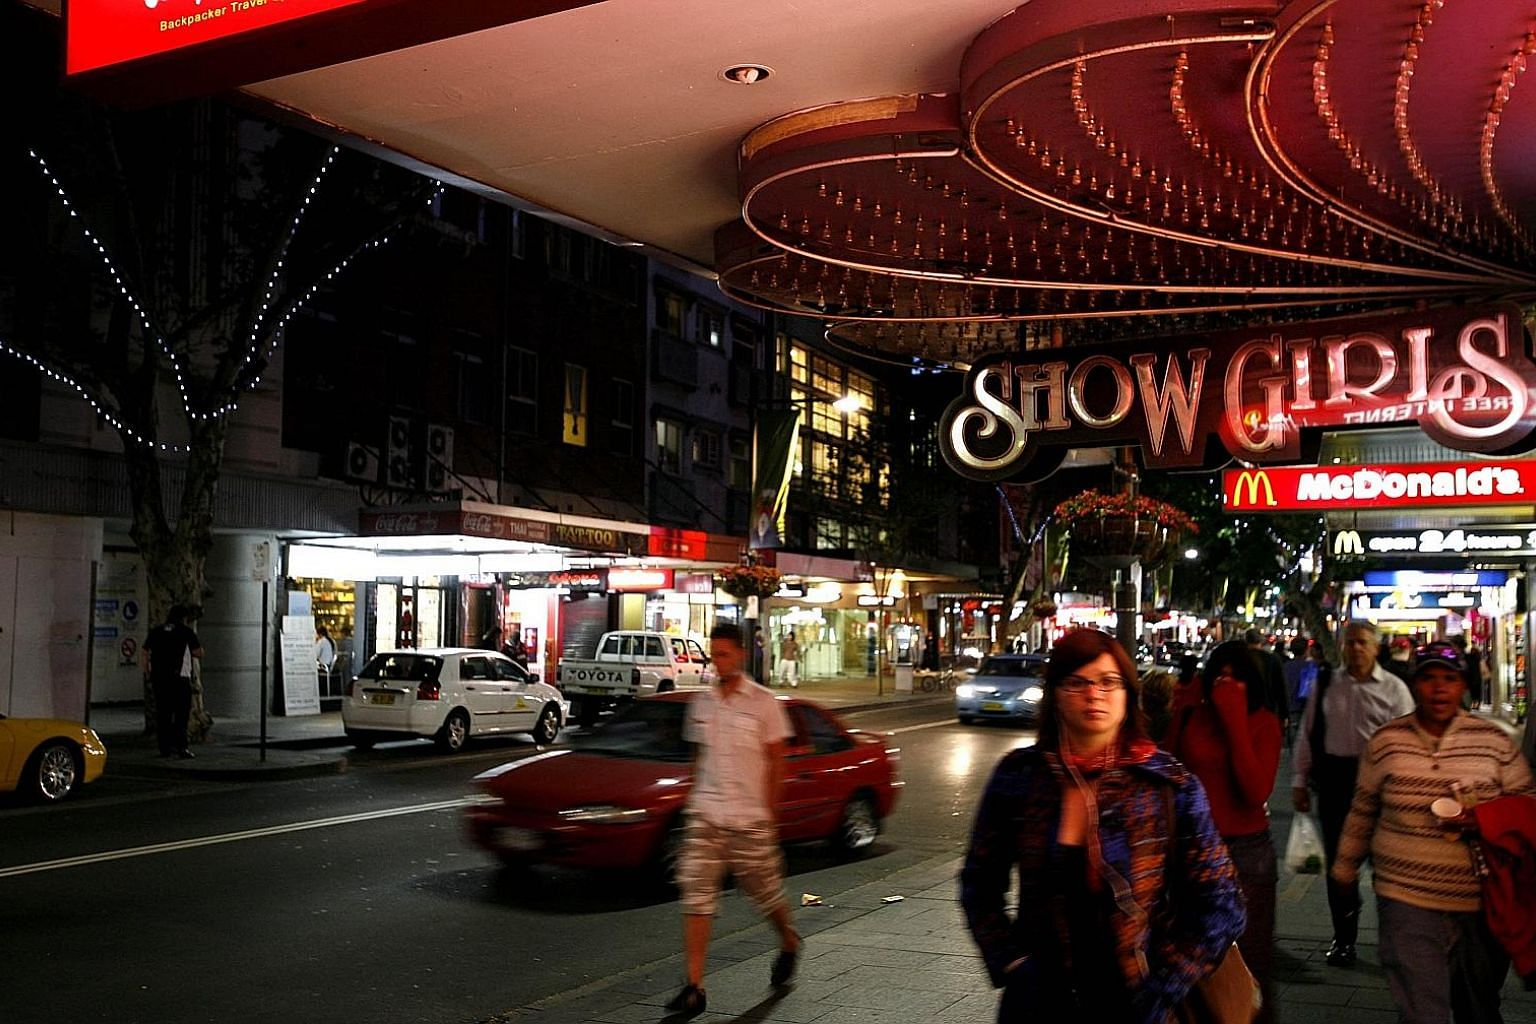 The main entertainment strip of Darlinghurst Road in Kings Cross. A review of alcohol laws in New South Wales is strongly backed by business groups and restaurants. Sydney's night-time economy employs about 36,000 people. PHOTO: BLOOMBERG